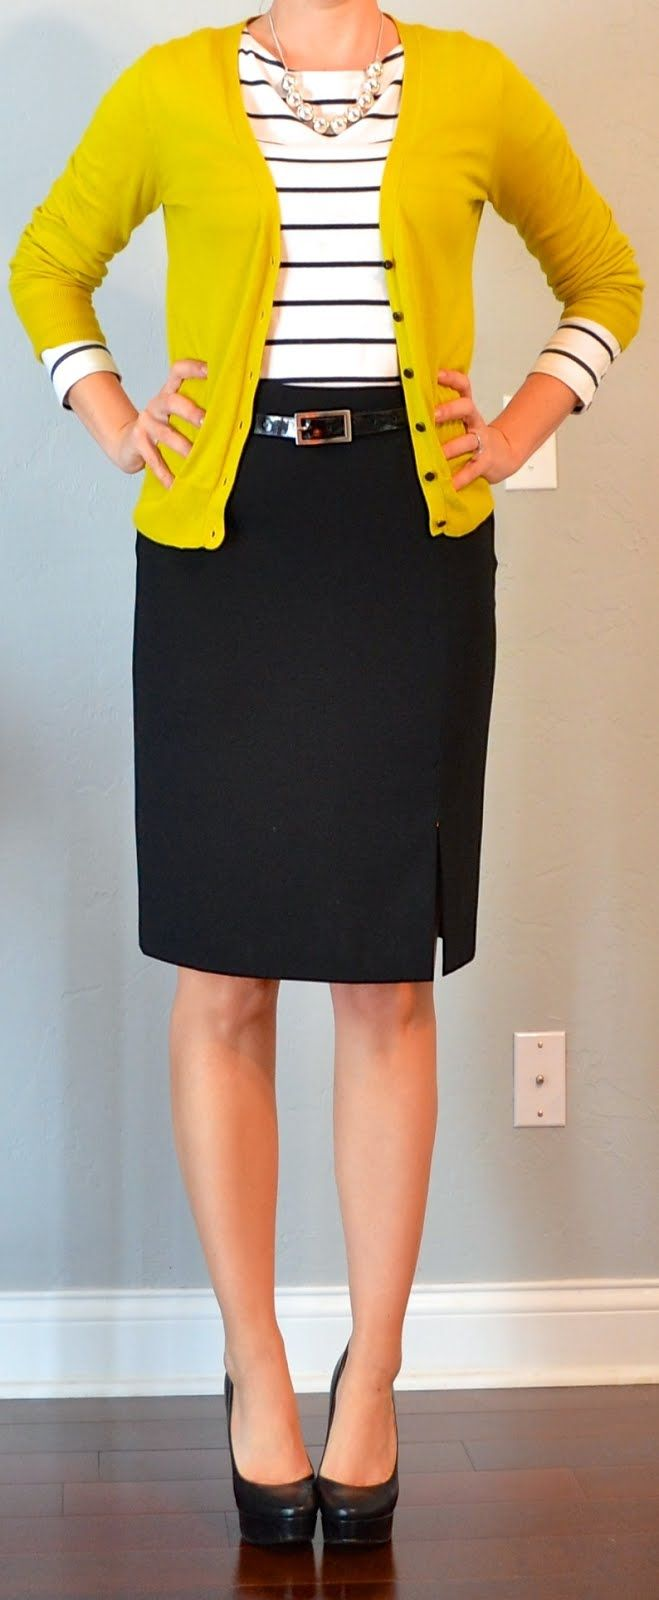 Outfit Posts: (outfits 6-10) one suitcase: business casual capsule wardrobe http://outfitposts.blogspot.com